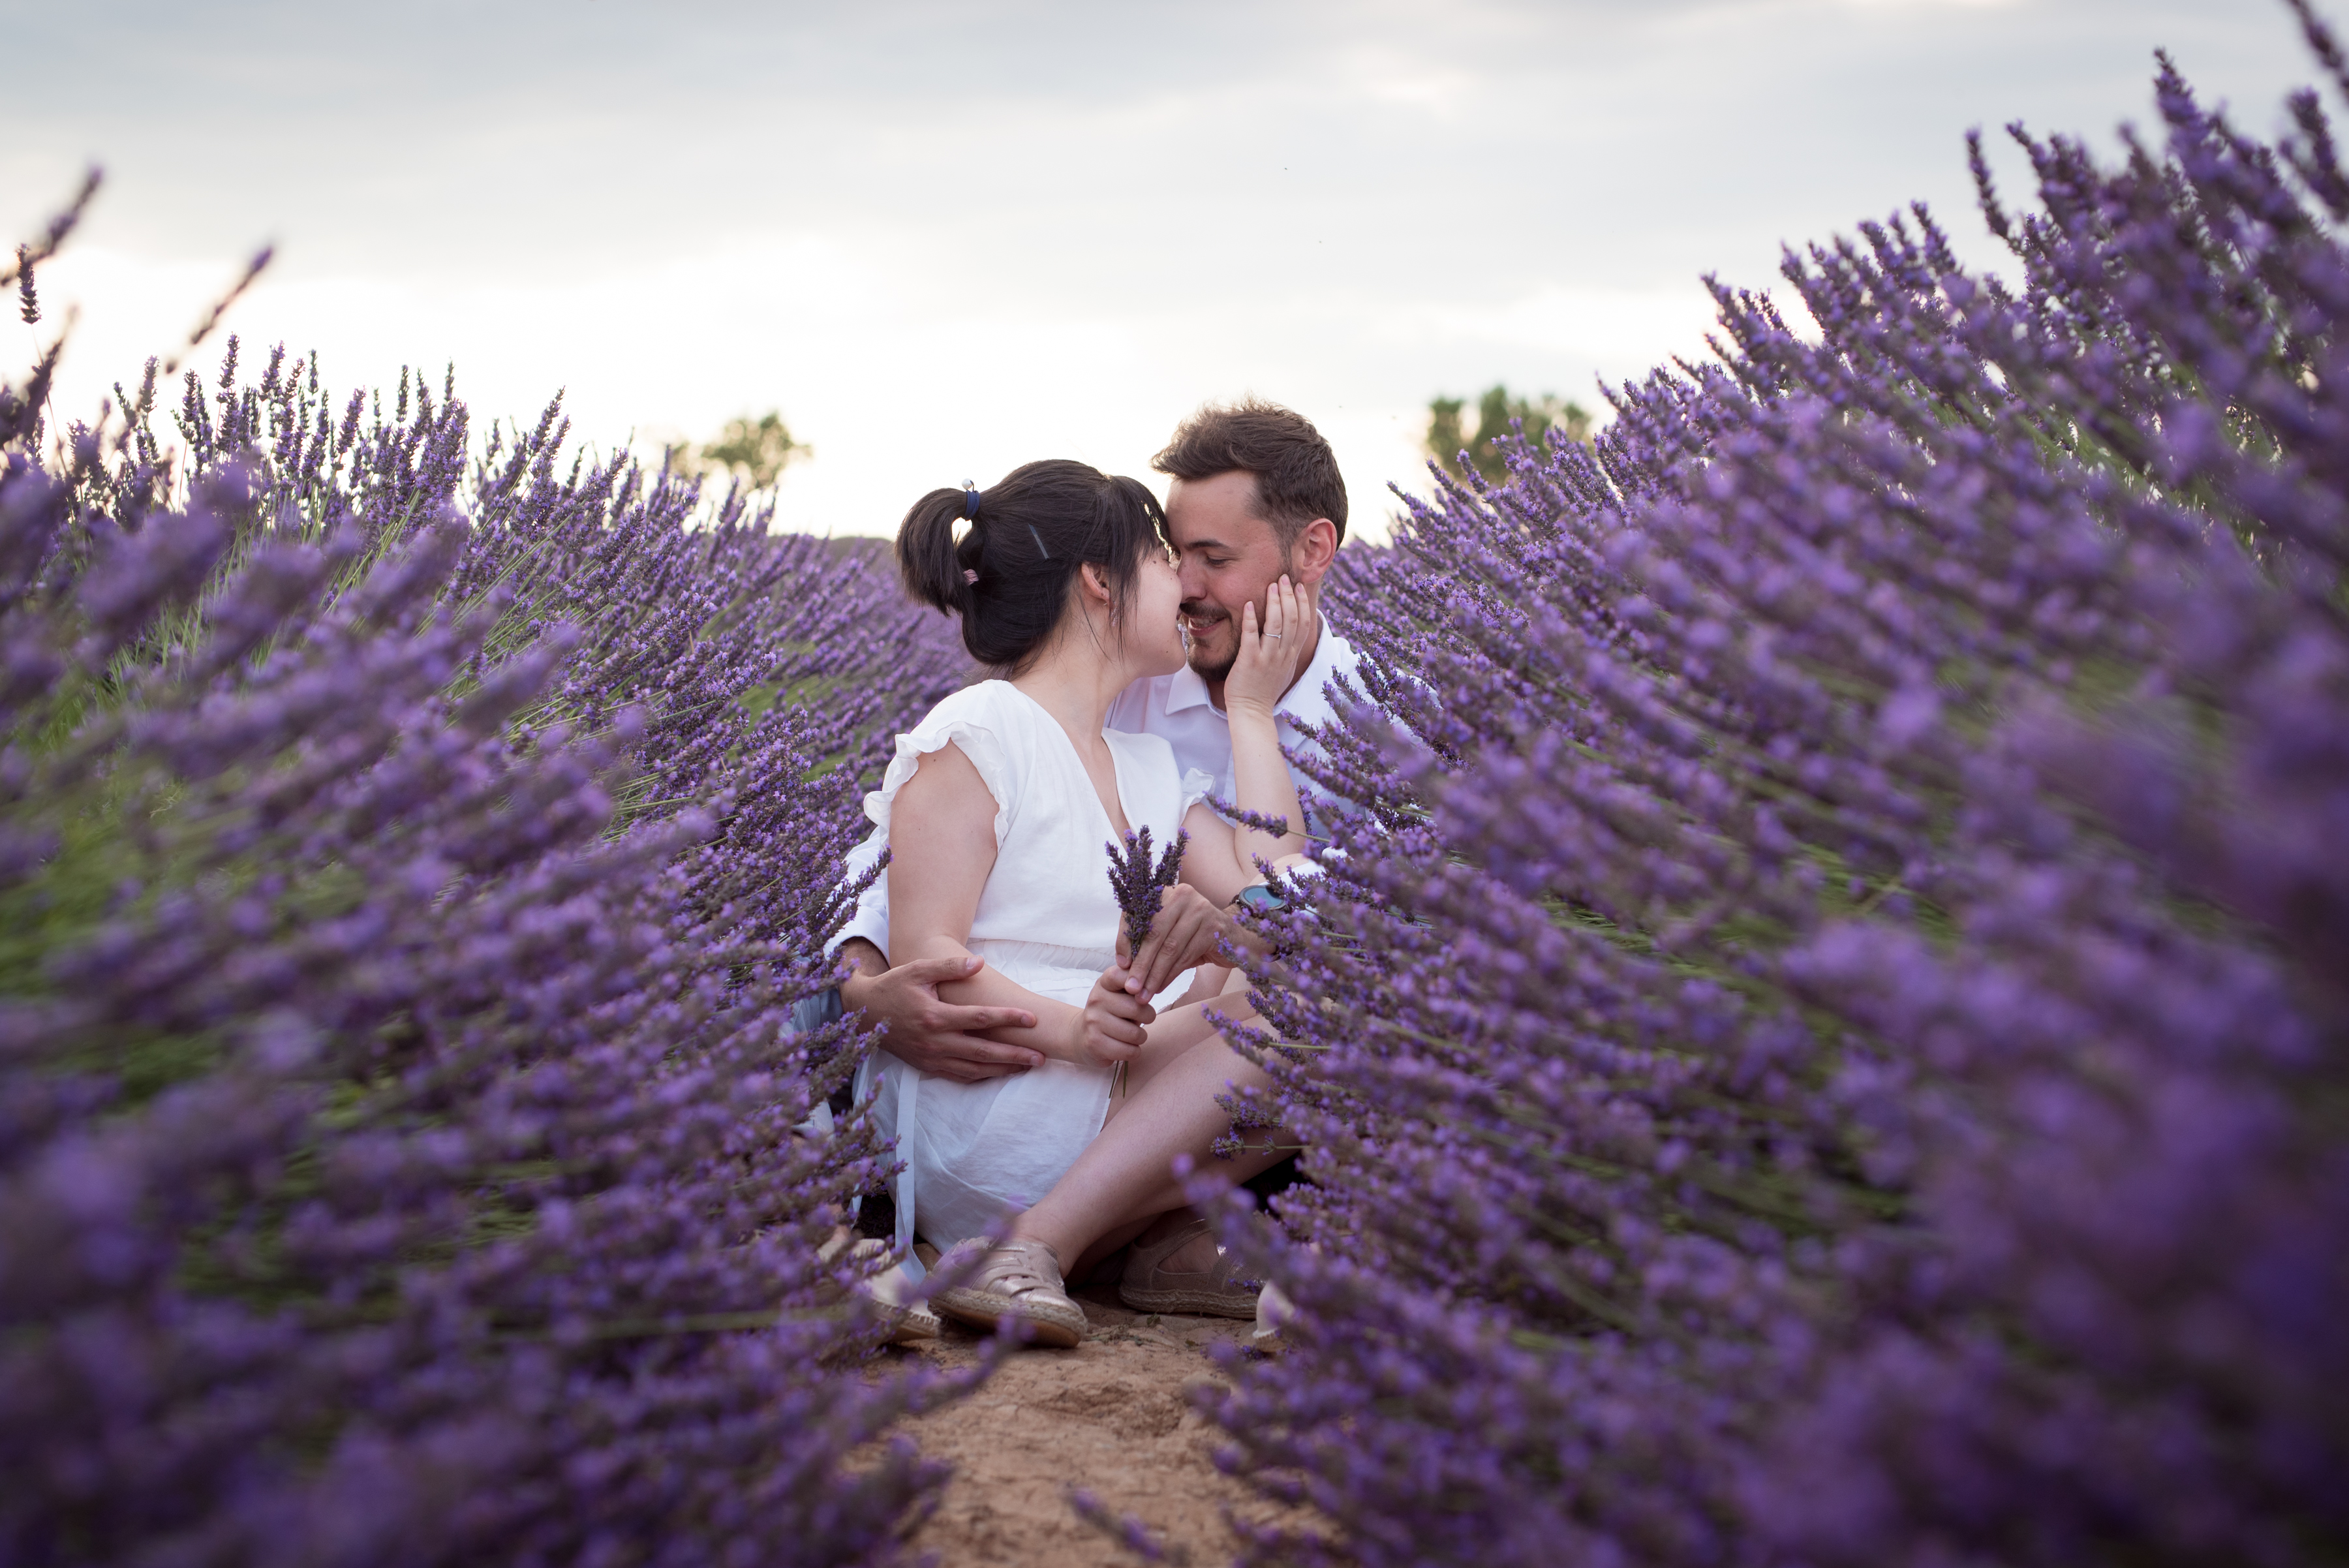 Photographe-couple-engagement-aix-en-provence-marseille-pertuis